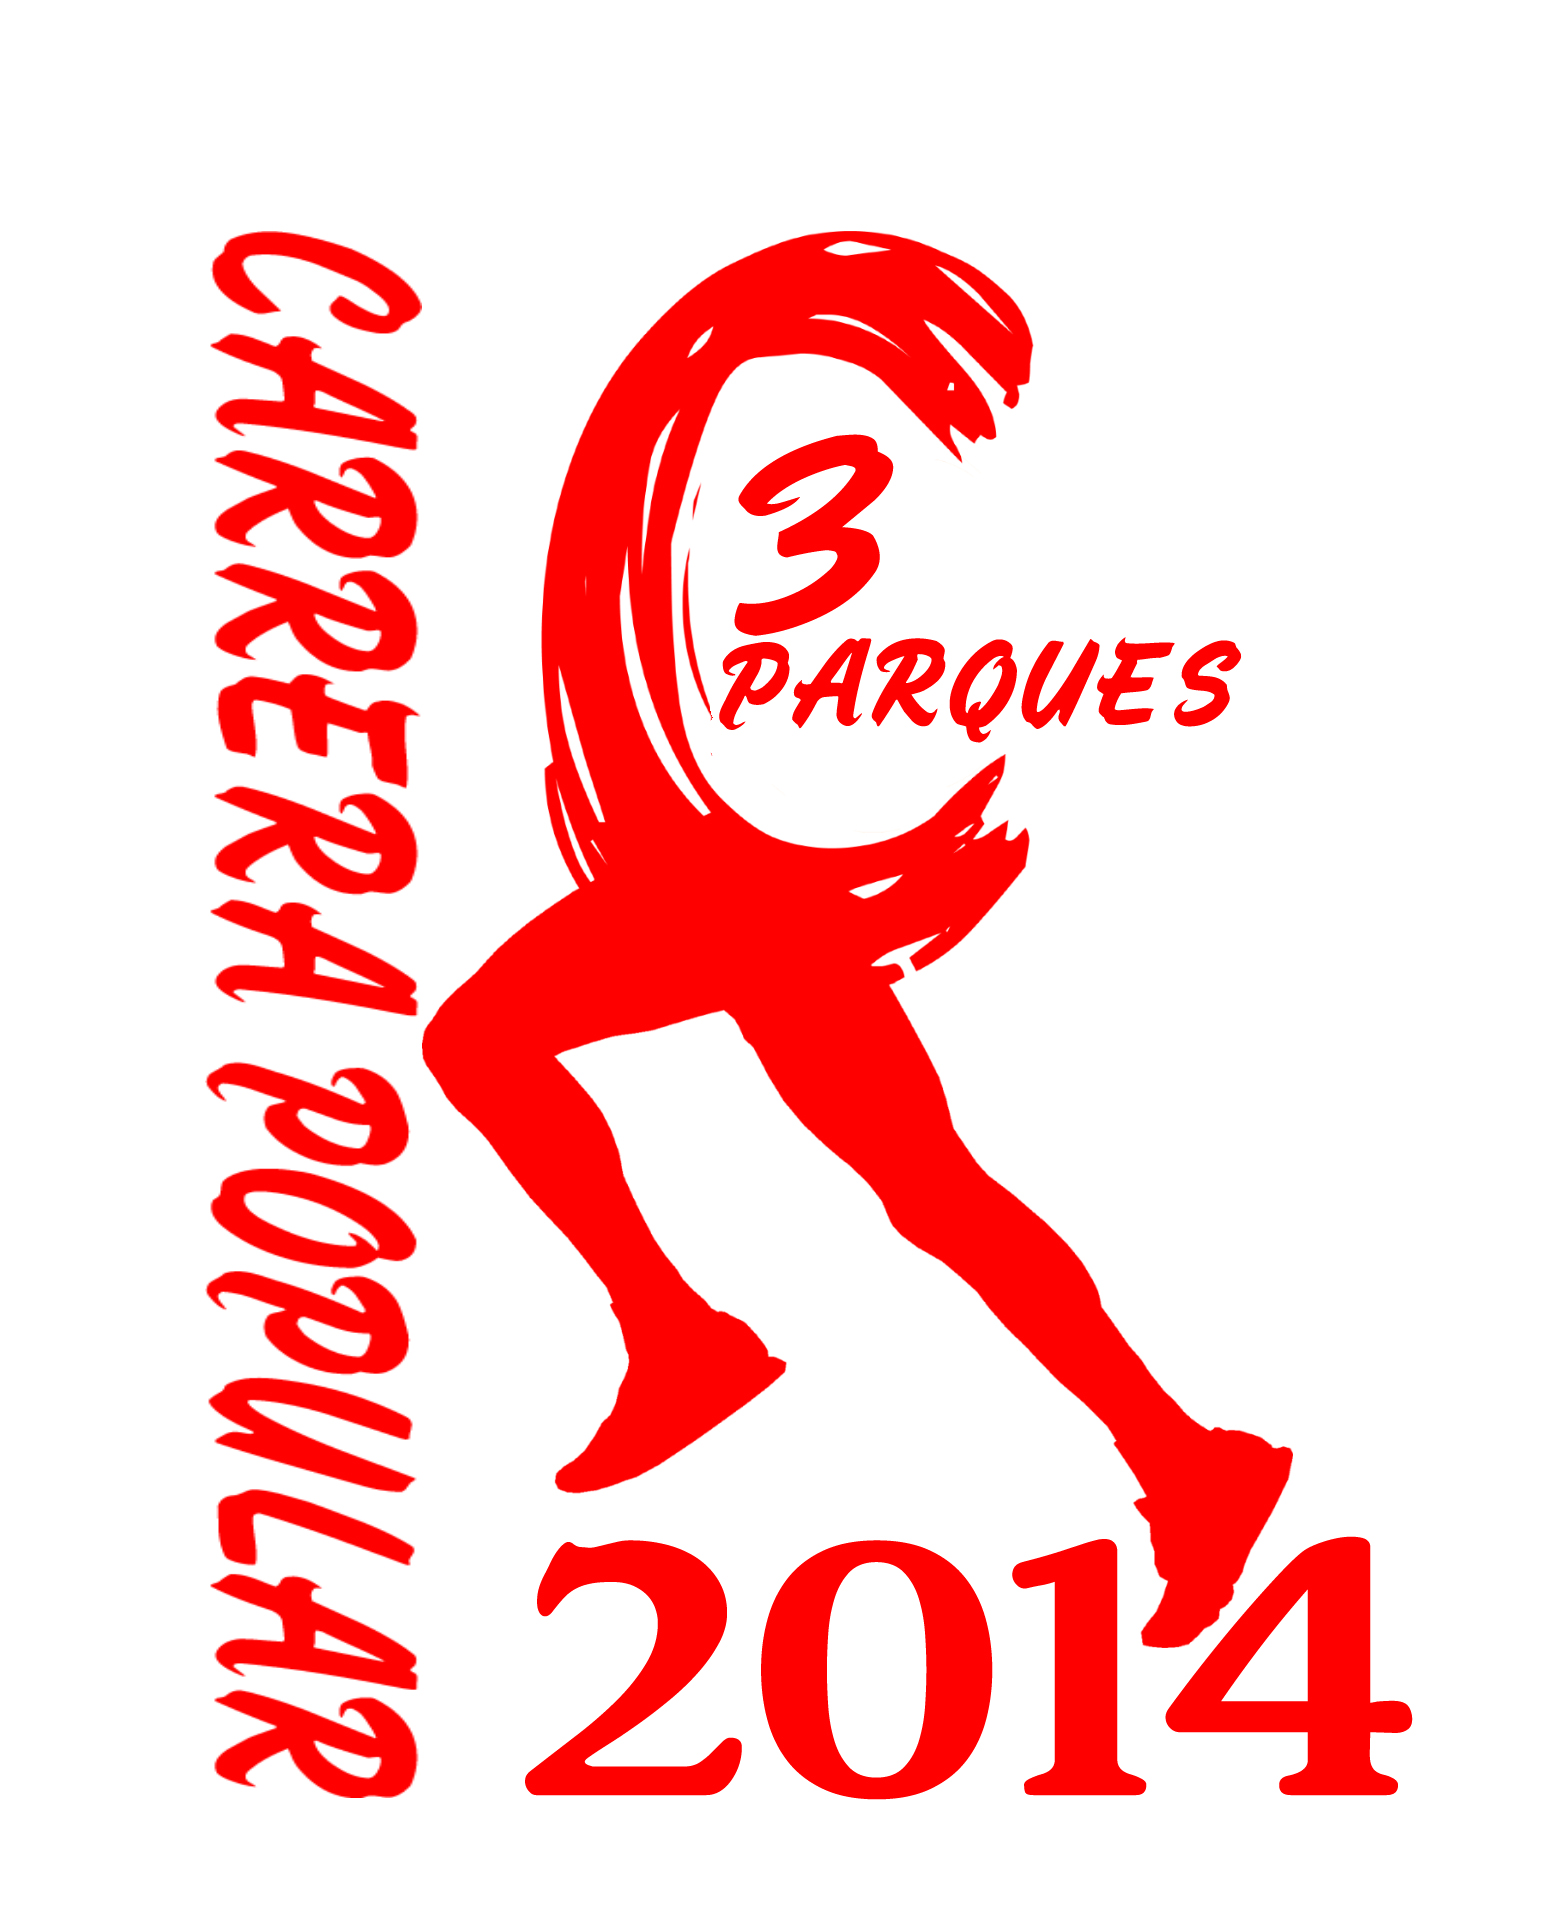 Descargar LOGO CARRERA POPULAR 3 PARQUES